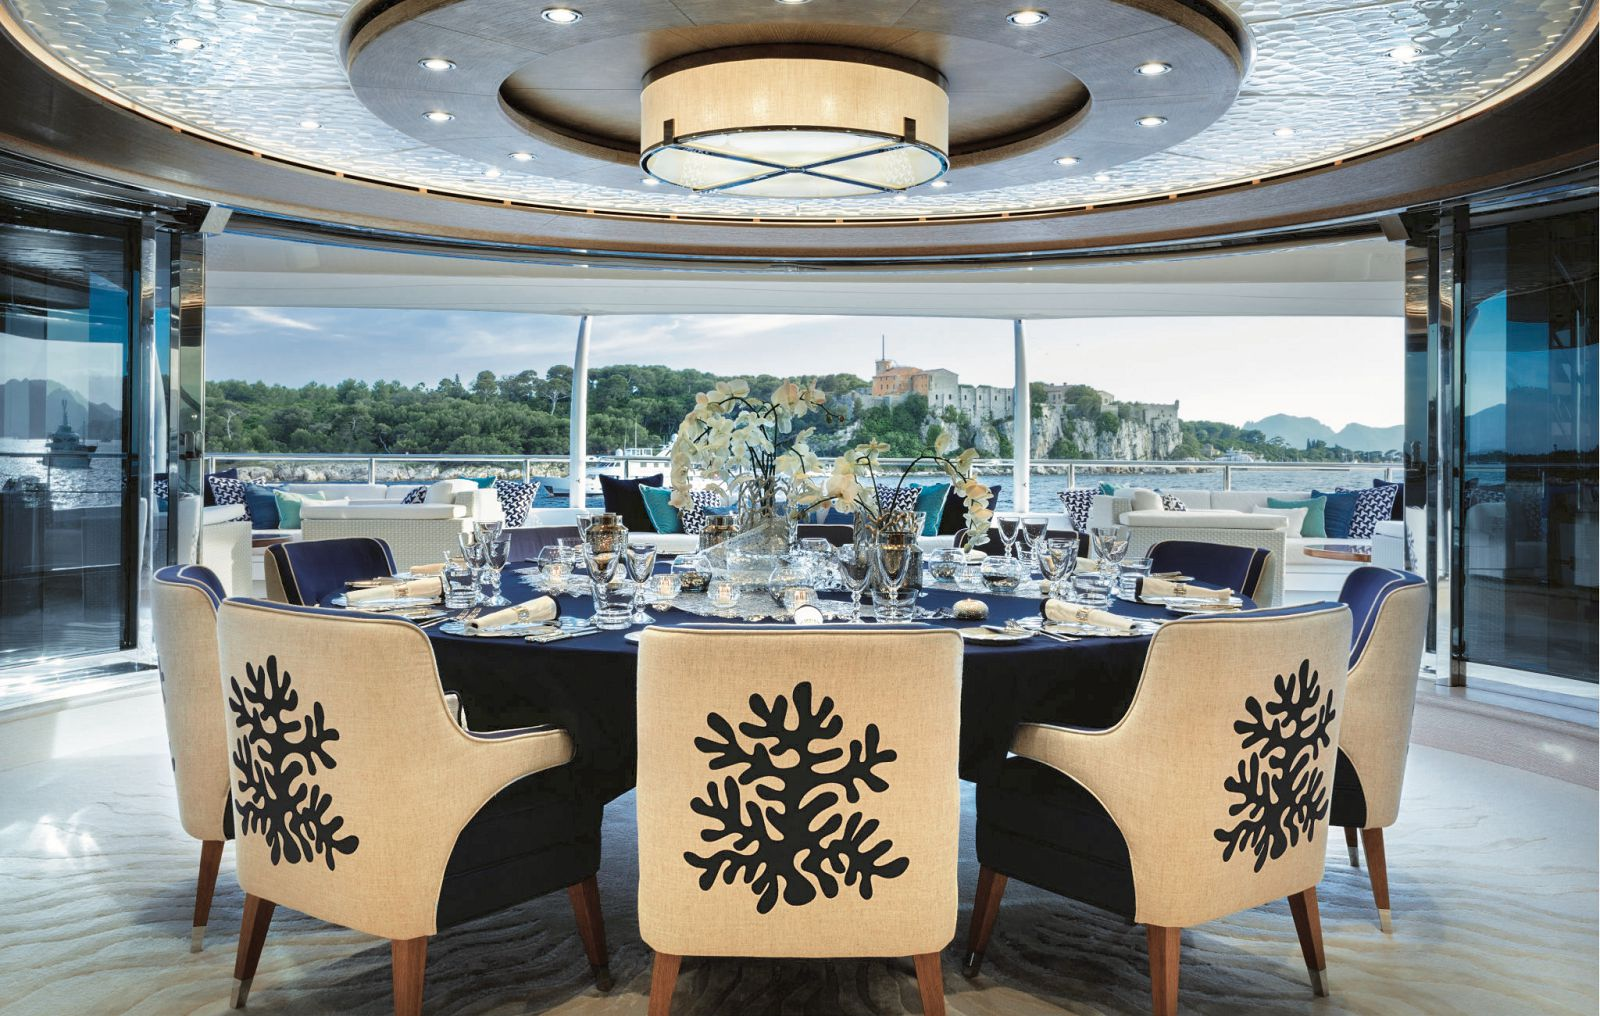 Main salong dining room with 180 views openning up to the aft deck. >